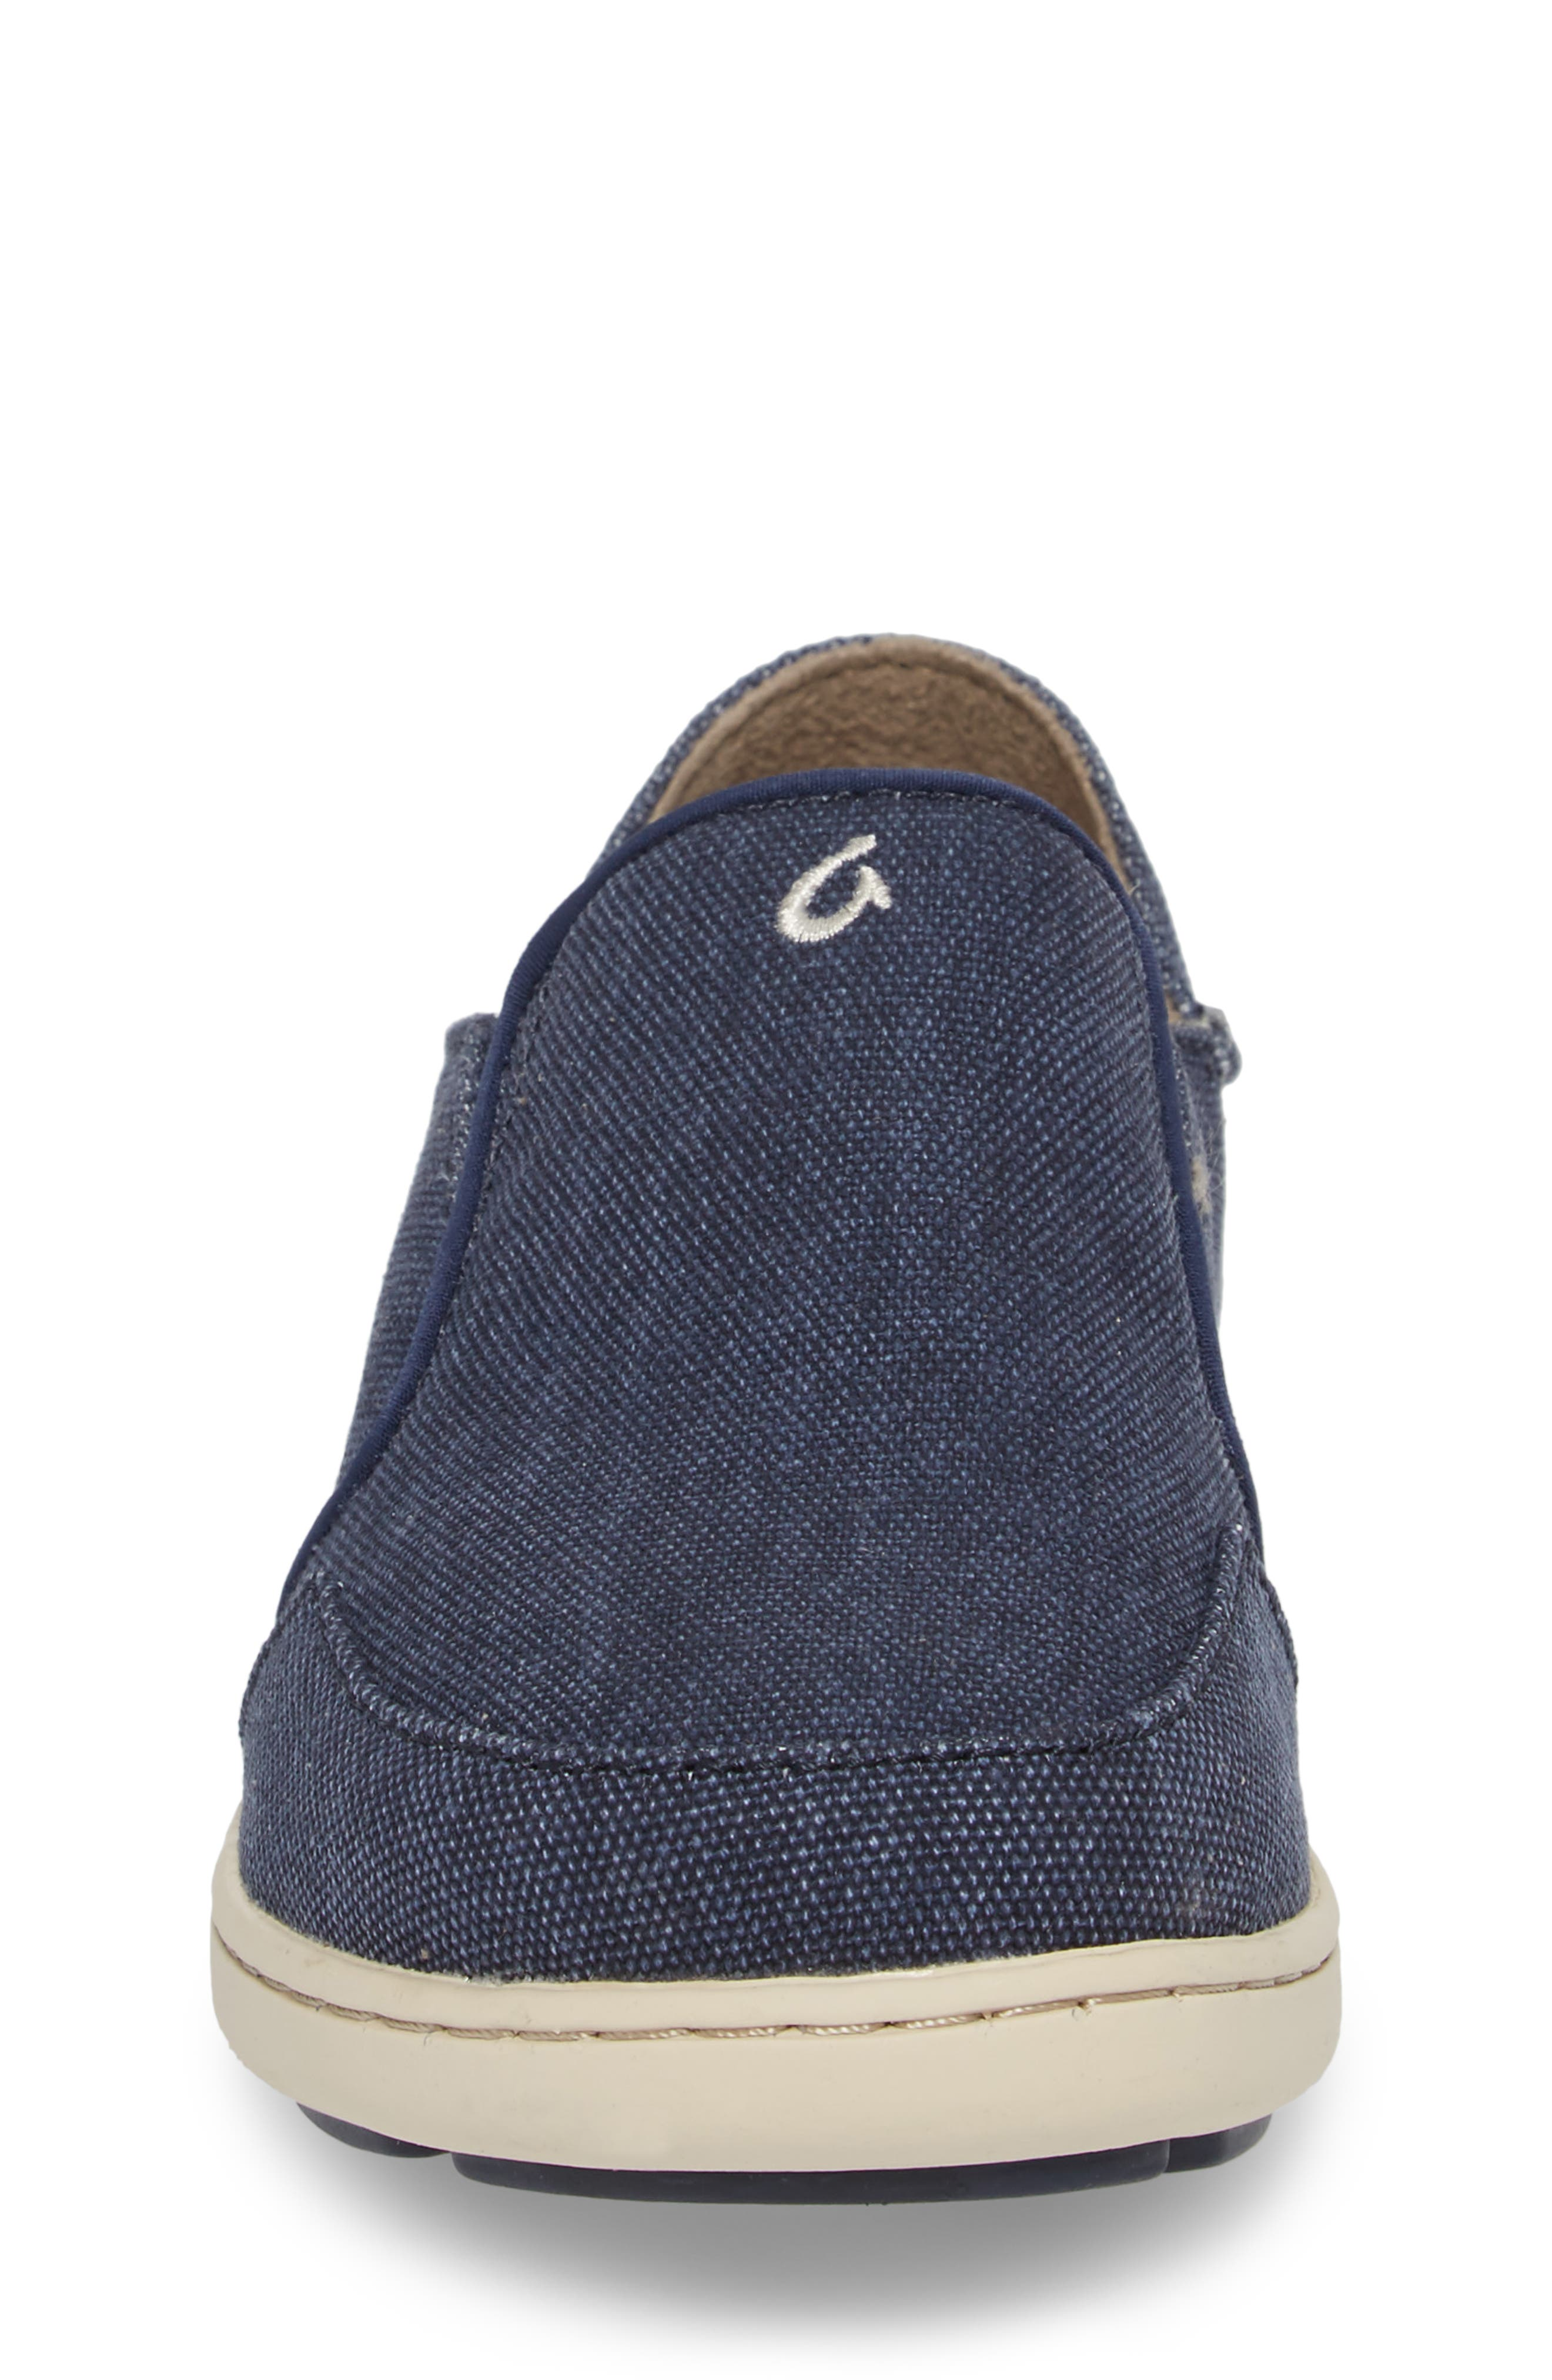 Nohea Lole Collapsible Slip-On,                             Alternate thumbnail 4, color,                             Trench Blue